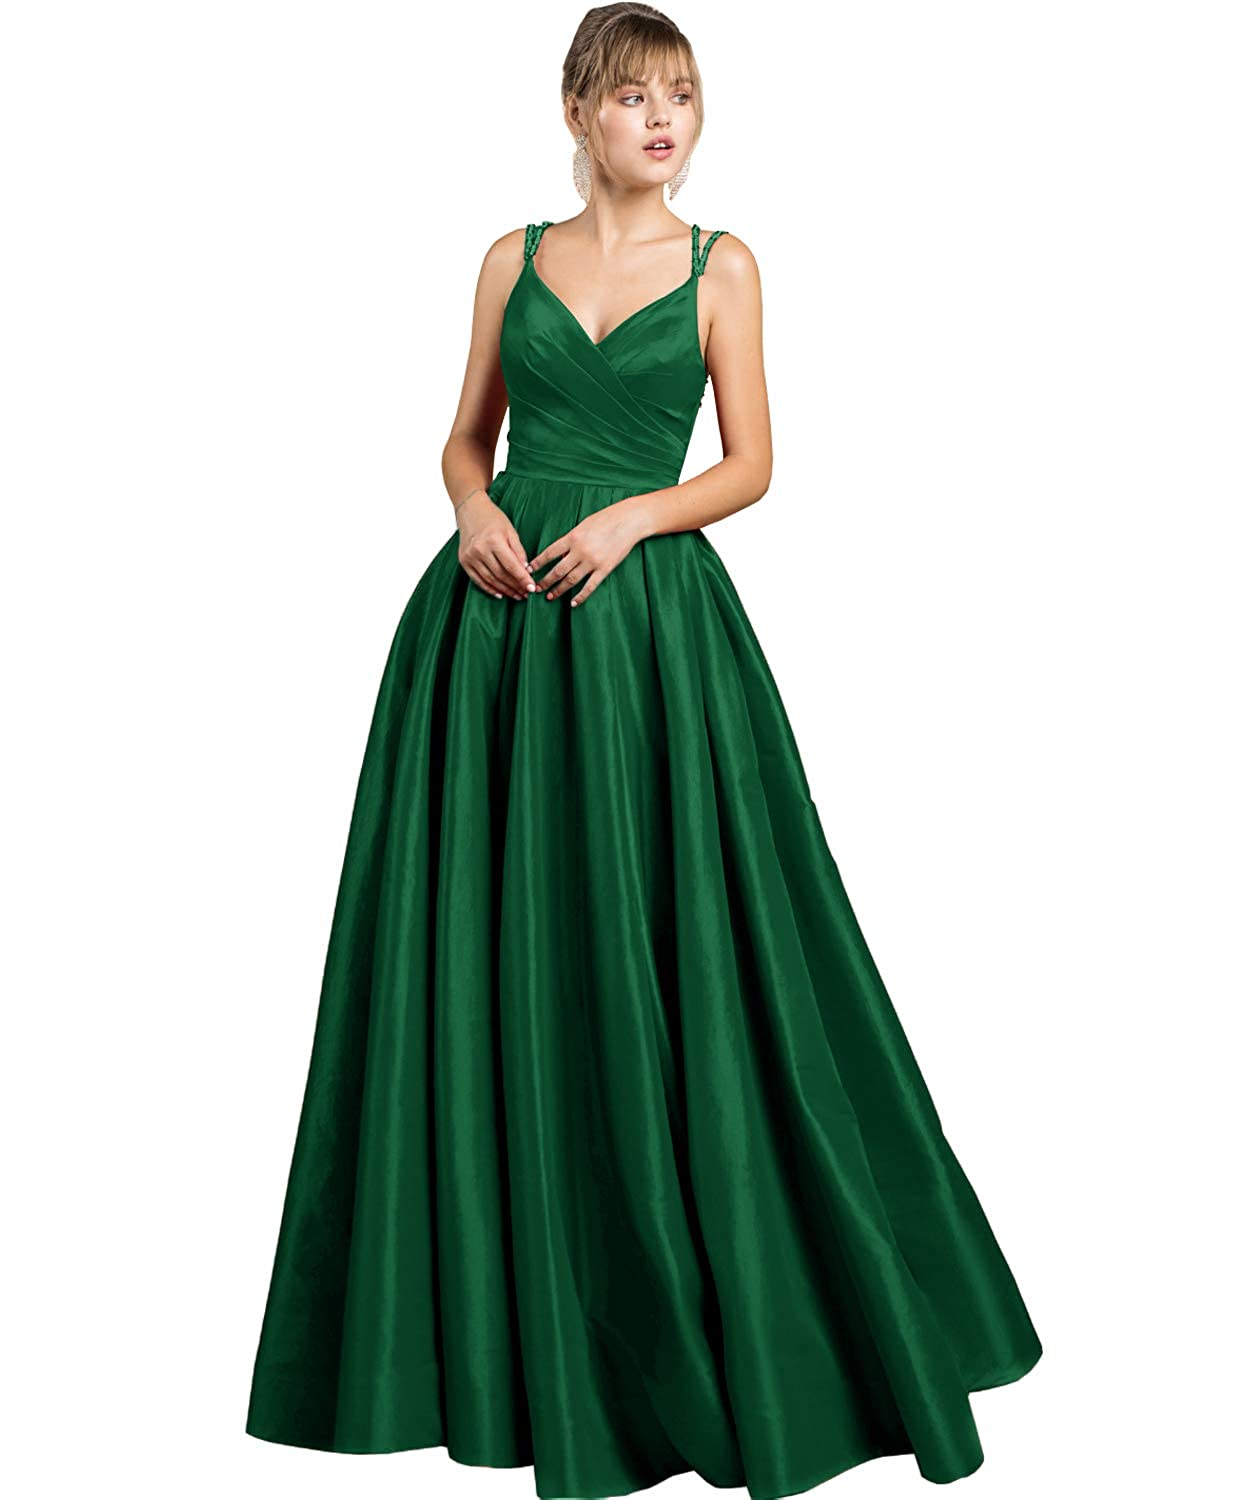 Emerald Green Yilis Women's Beaded Spaghetti Straps V Neck Satin Aline Evening Prom Dress Long Formal Gown with Pockets